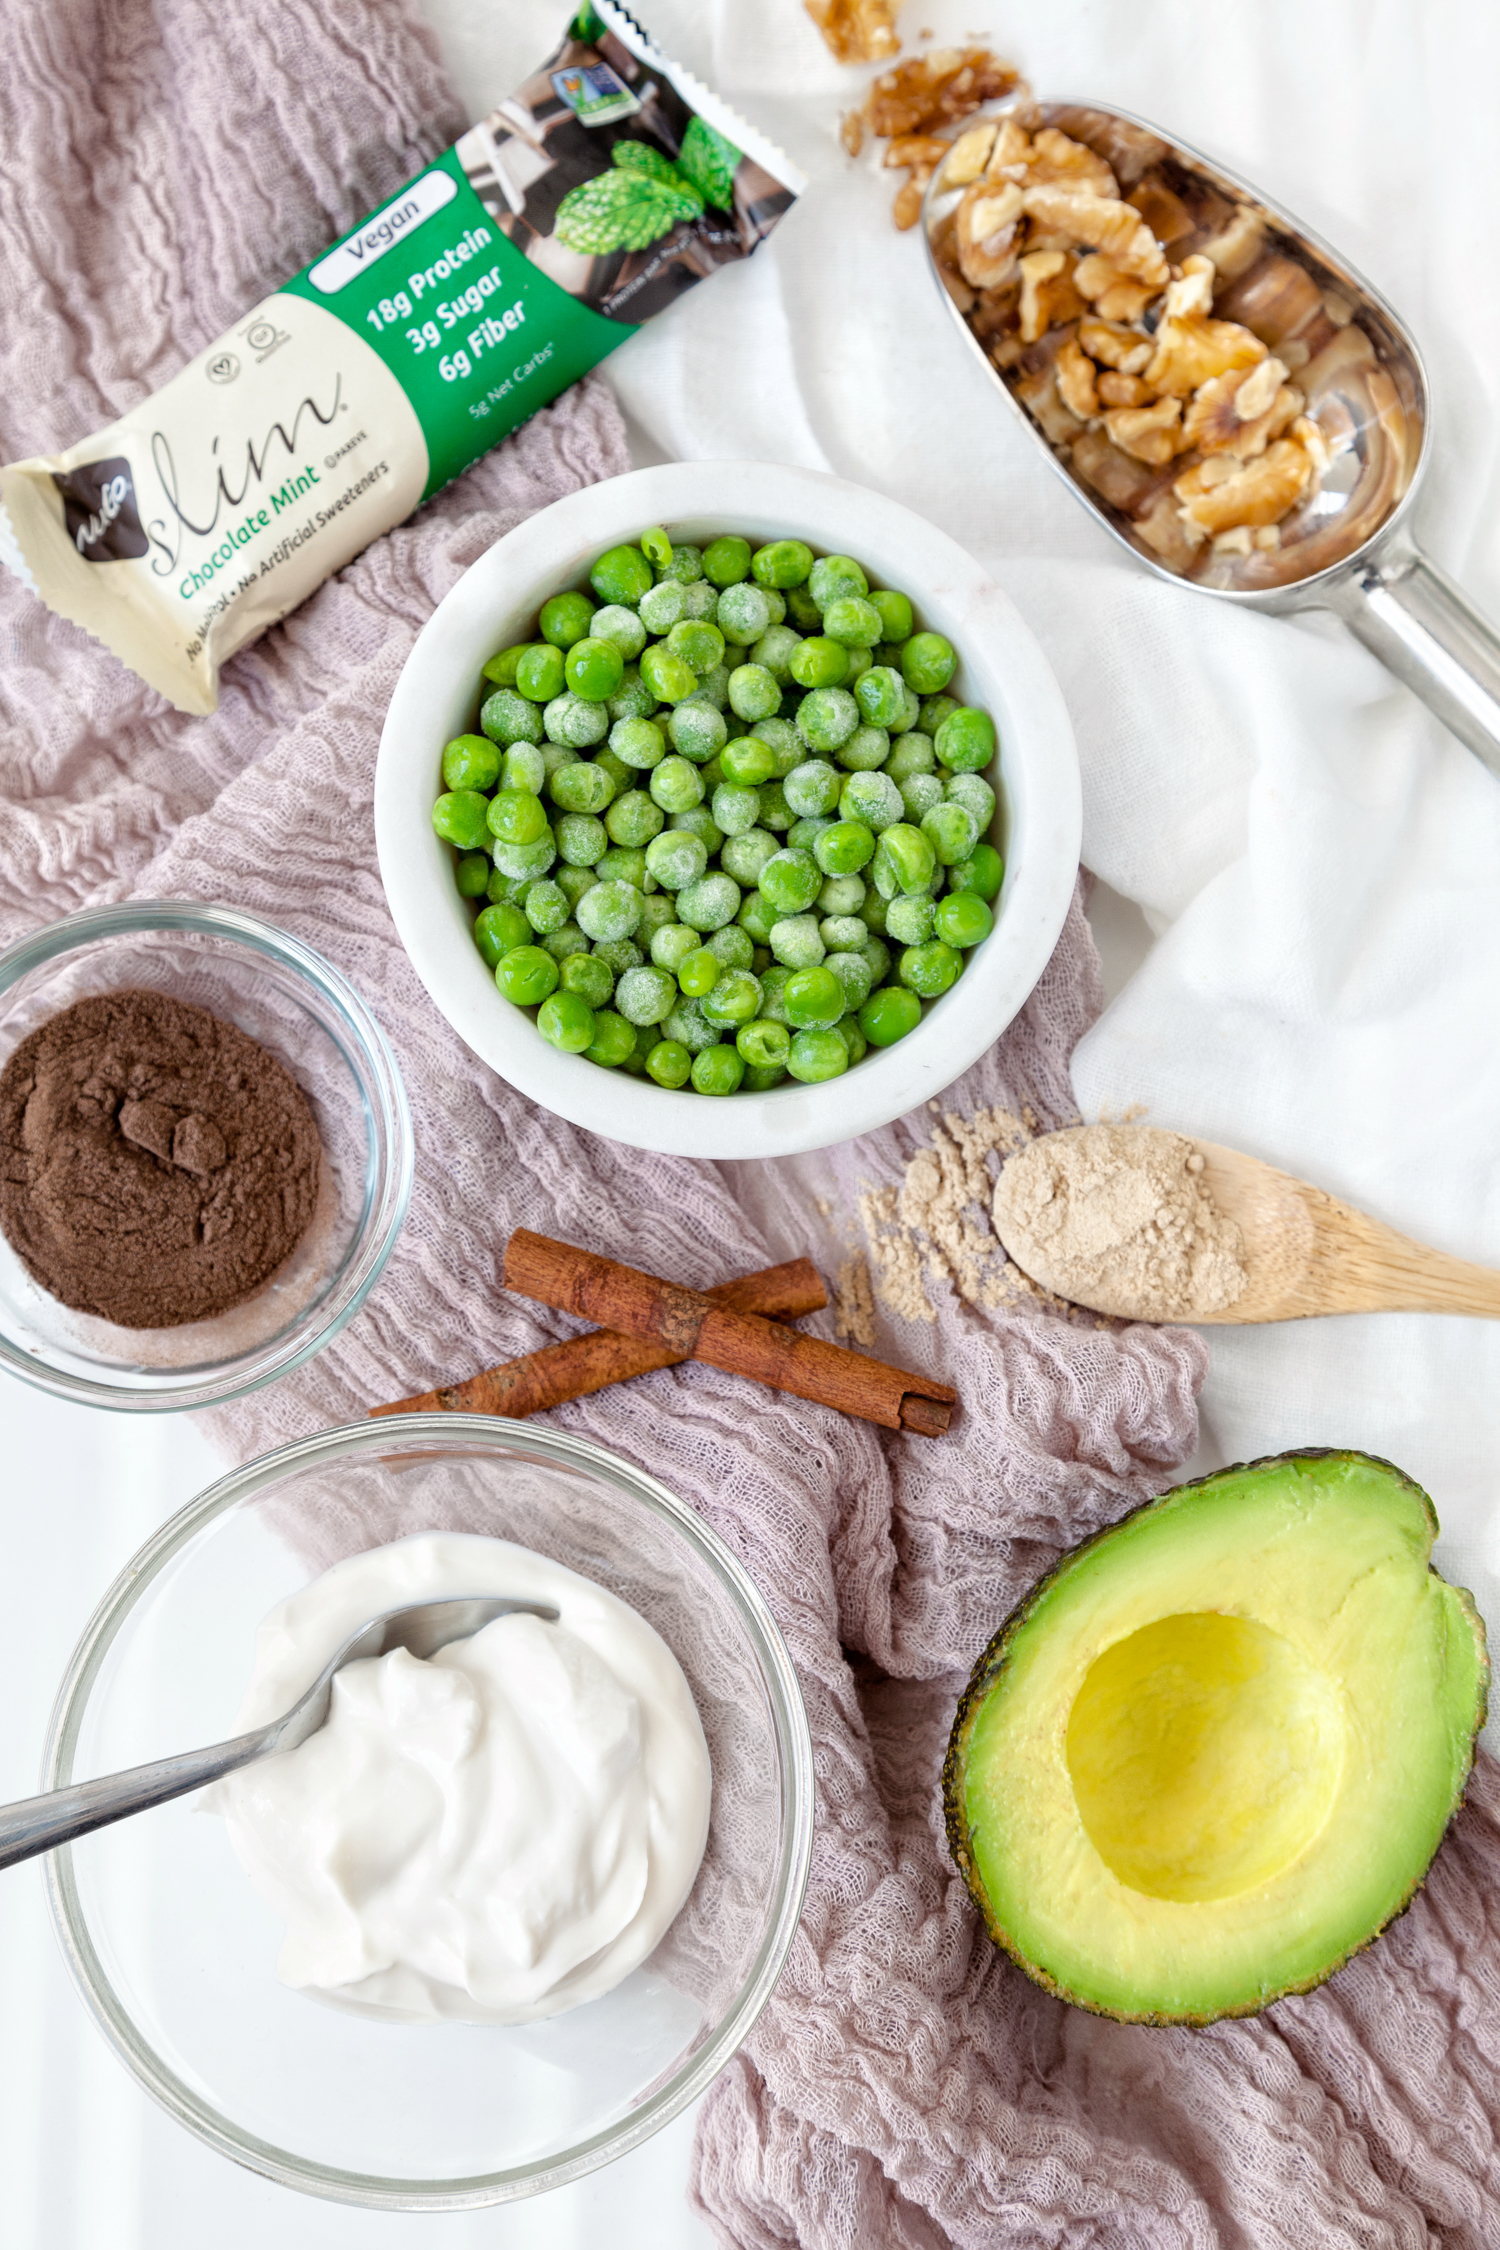 Low-Sugar Smoothie ingredients: Nugo Slim Chocolate Mint, frozen peas, walnuts, avocado, non-dairy yogurt, cinnamon, nutmeg, Navitas organic gelatinized maca, Four Signmatic Chaga, SunWarrior vanilla protein powder.